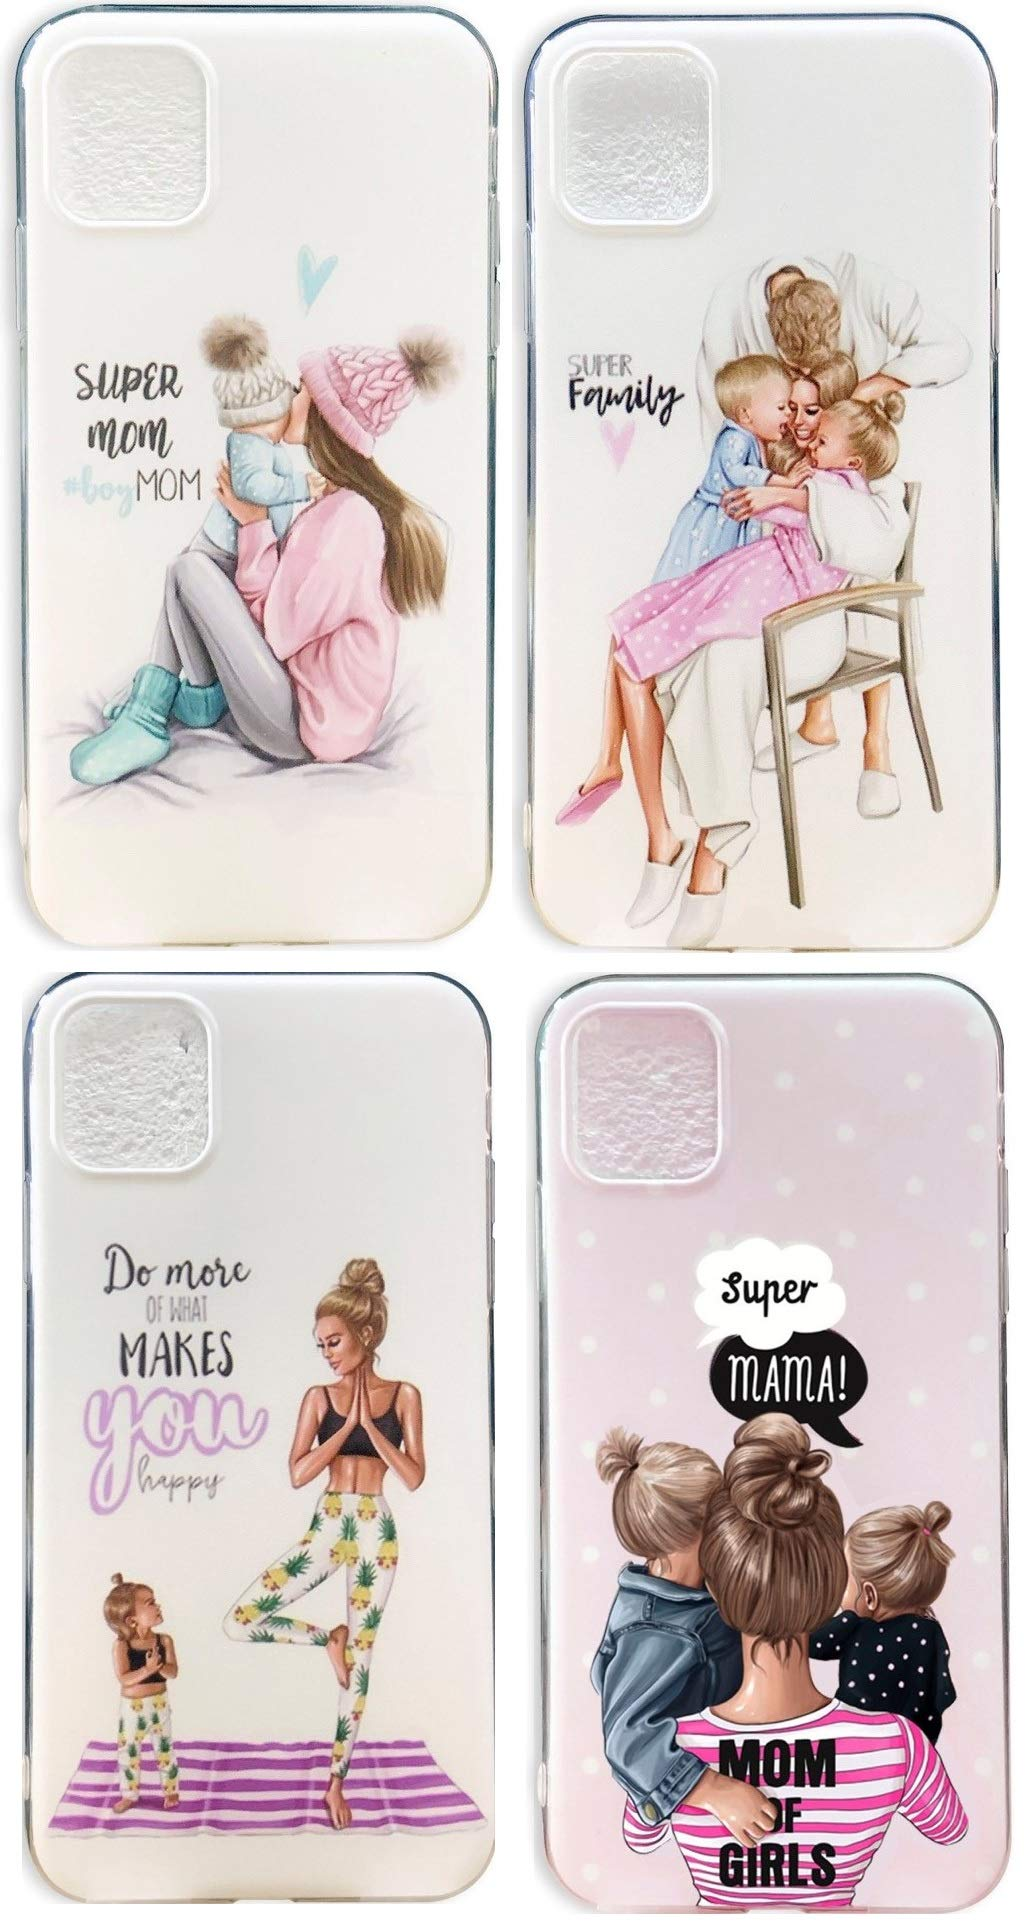 Amazon Com Iphone 11 Pro Plus Inspirational Quote Case Mom Dad Baby Girl Boy Family Silicone Case Shockproof Waterproof Slim Sleek Cover Compatible With All Iphone 11 Mode Iphone 11 Pro Max Dance Mom Electronics